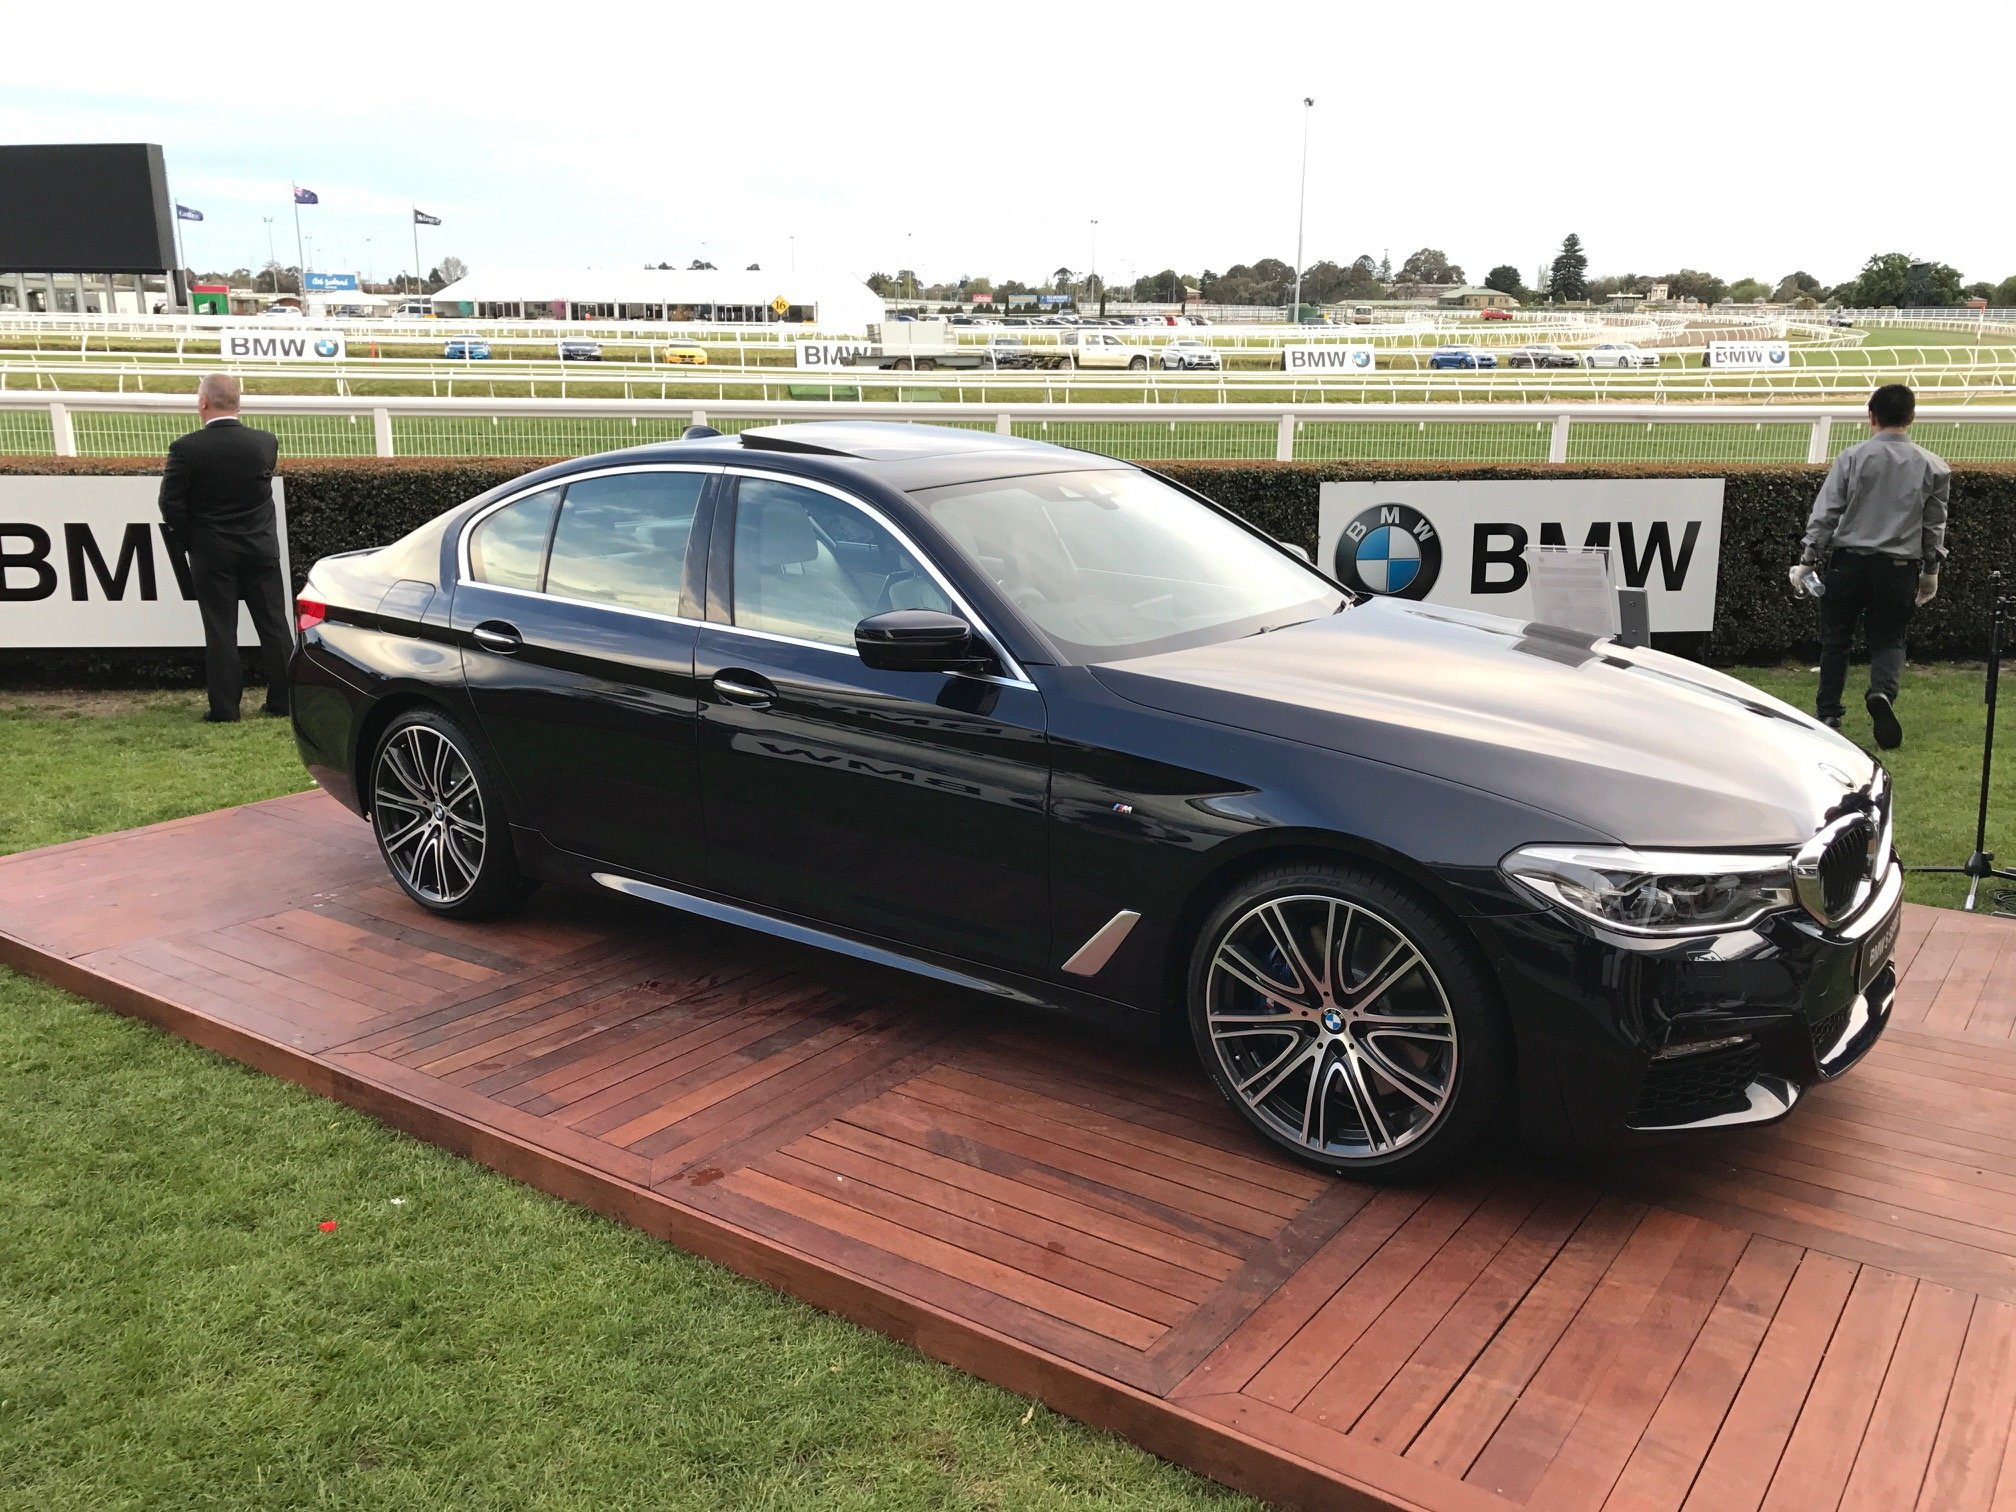 26 original 2017 bmw 5 series g30 first look review. Black Bedroom Furniture Sets. Home Design Ideas